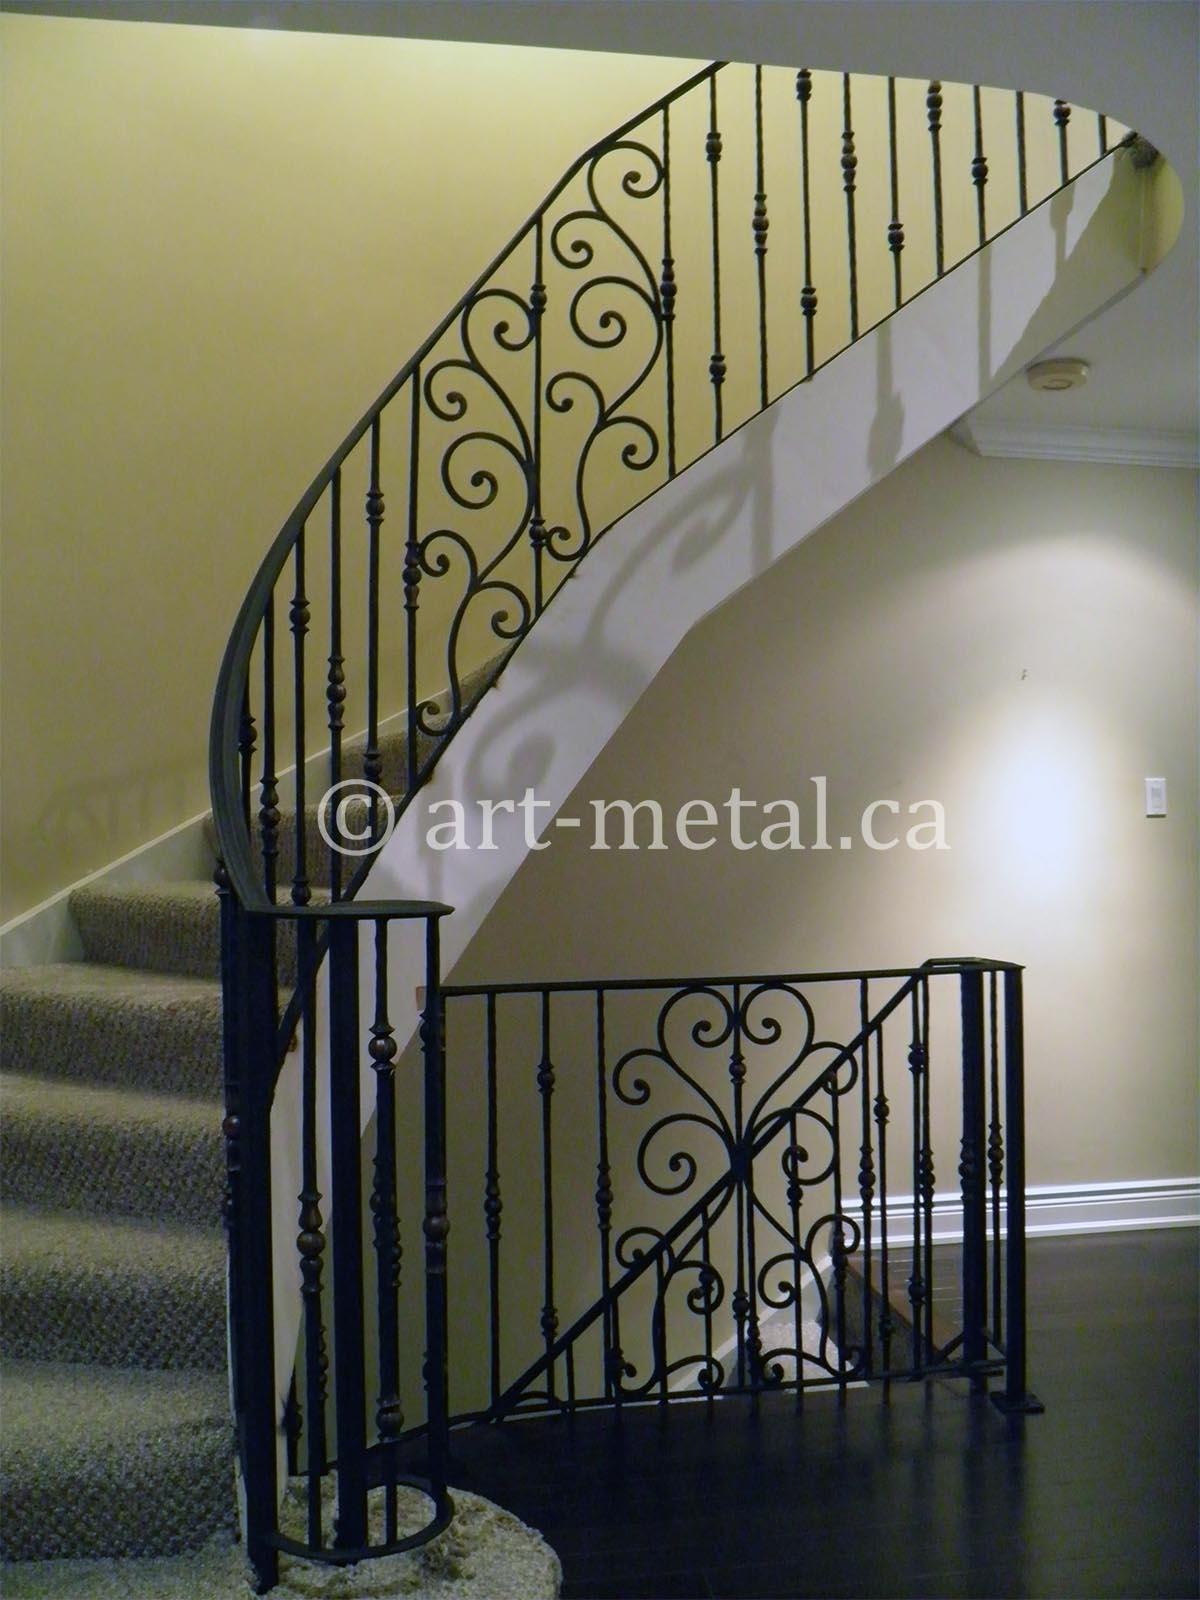 Get Best Wrought Iron Staircase Designs Ideas In Toronto   Wrought Iron Staircase Designs   Circular Staircase   Stair Grill Design   Railing Grand Staircase   Photo Flower Flower   Stairway